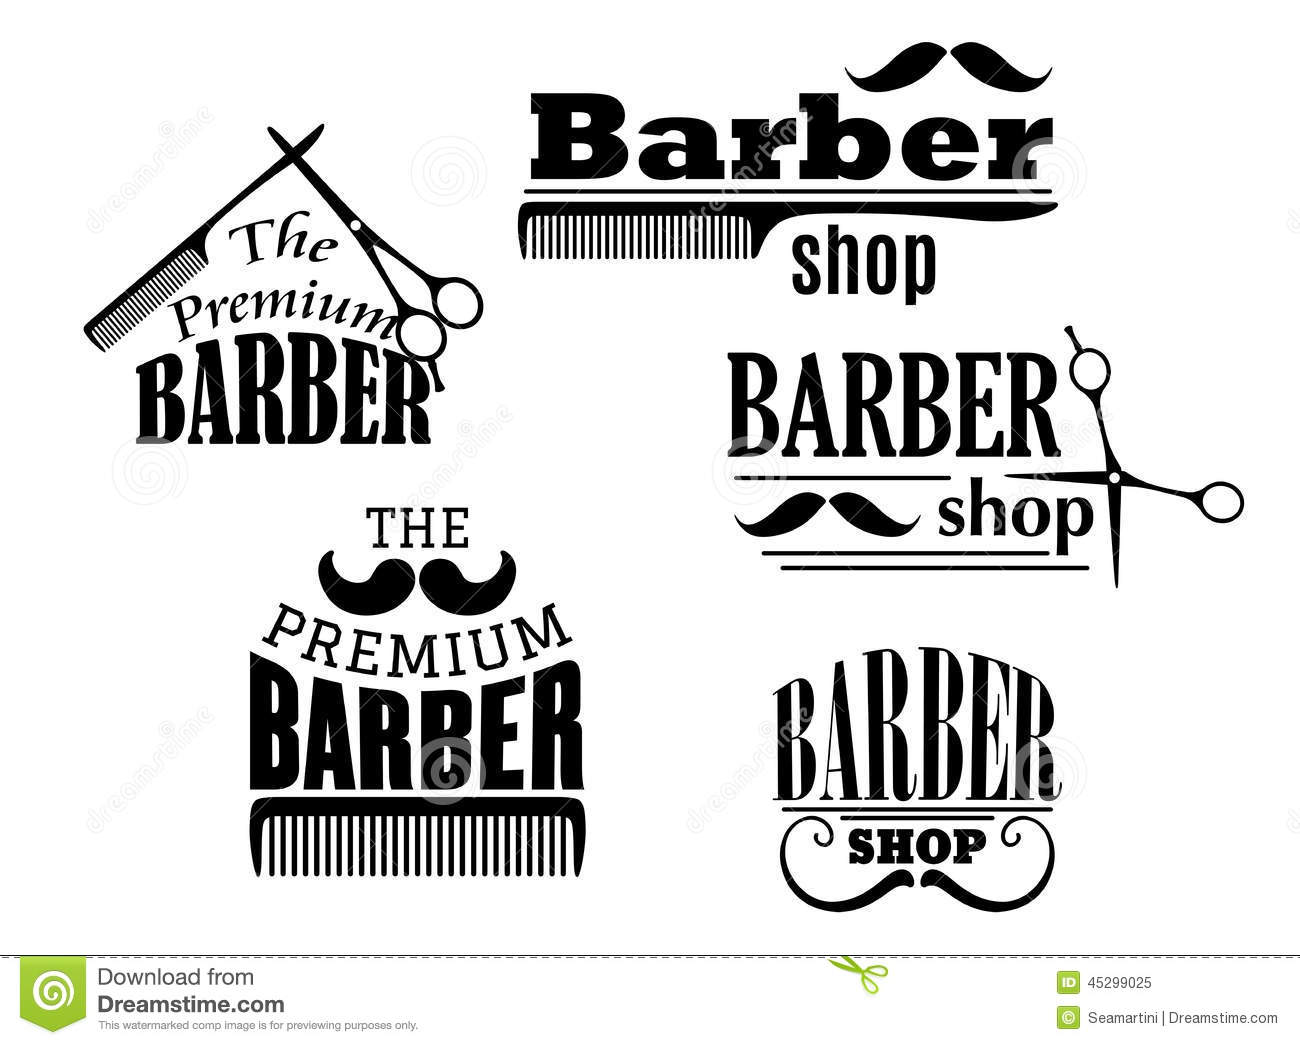 Starting a Barbershop – Sample Business Plan Template